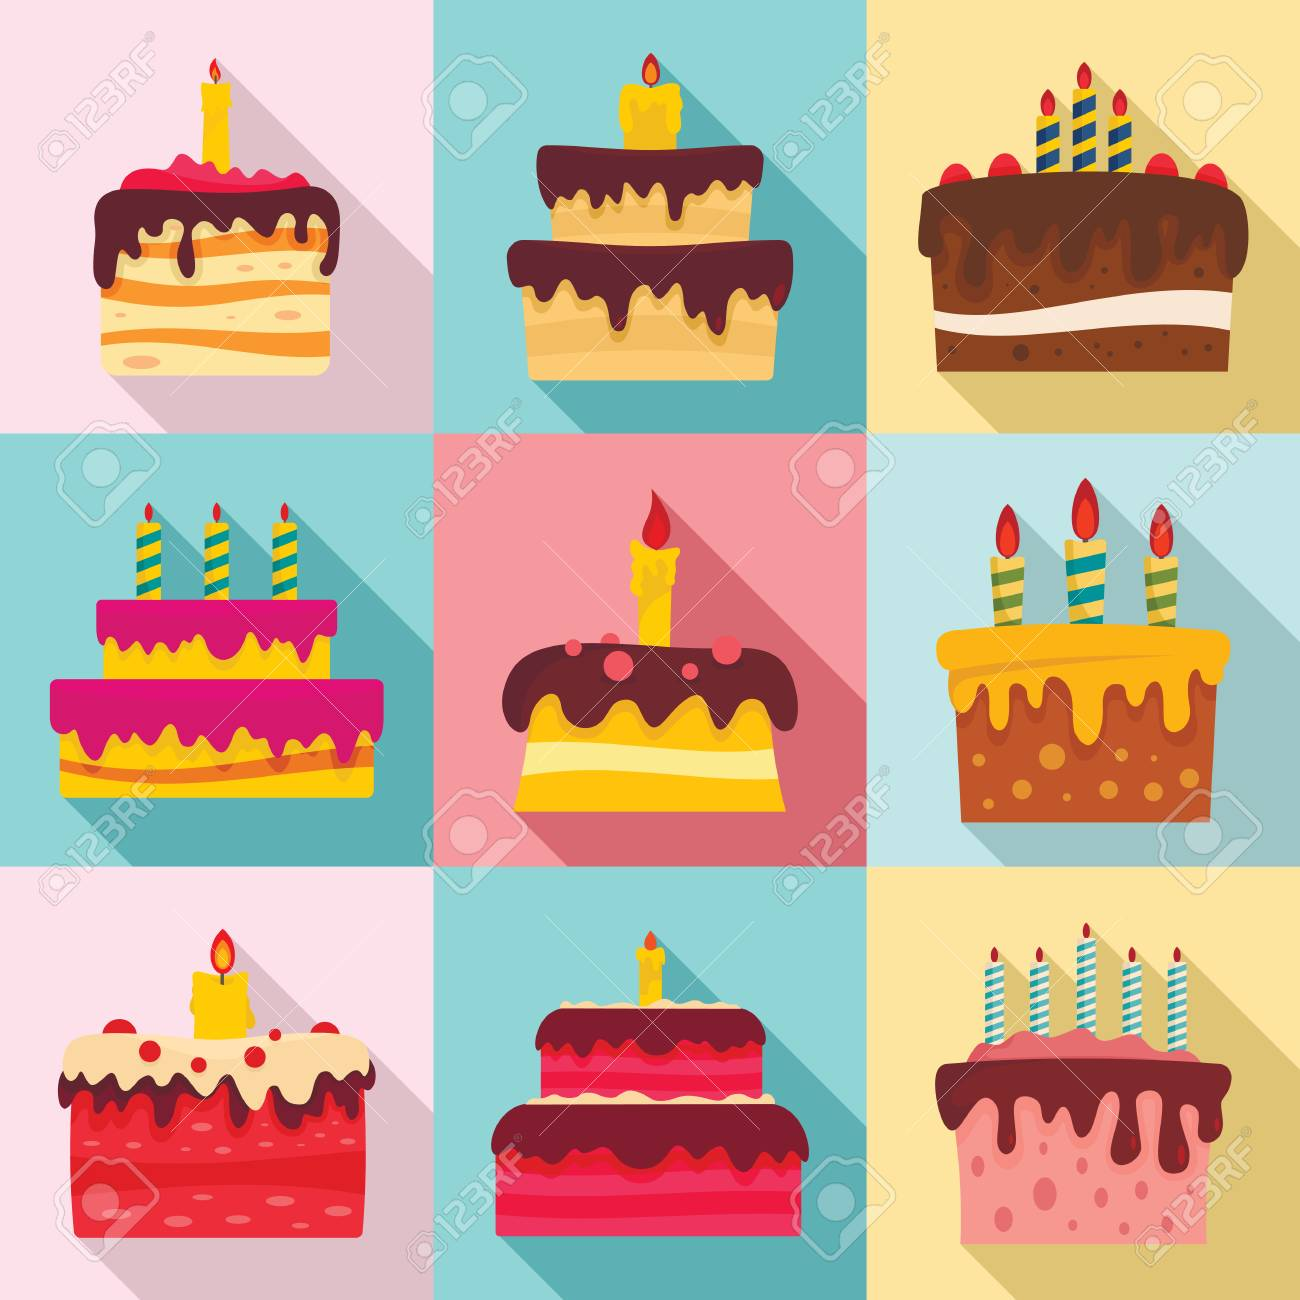 Cake Birthday Icon Set Flat Style Stock Photo Picture And Royalty